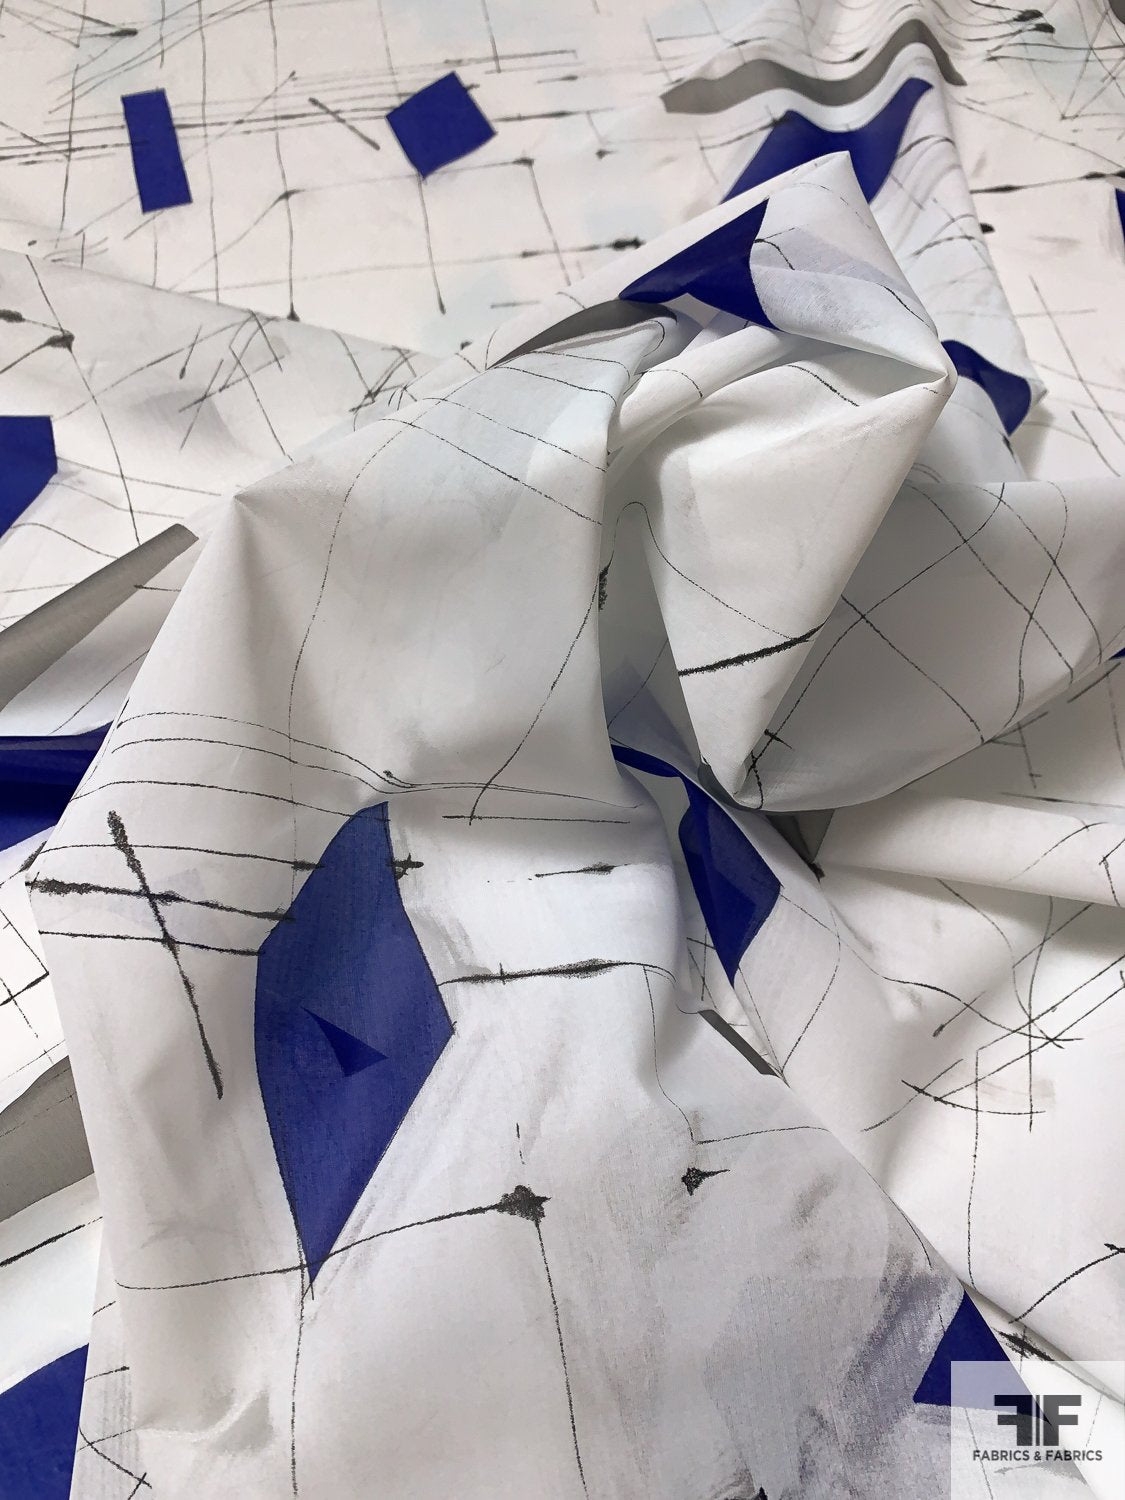 The Architect's Geometric Sketch Printed Silk Voile - White / Royal Blue / Grey / Black